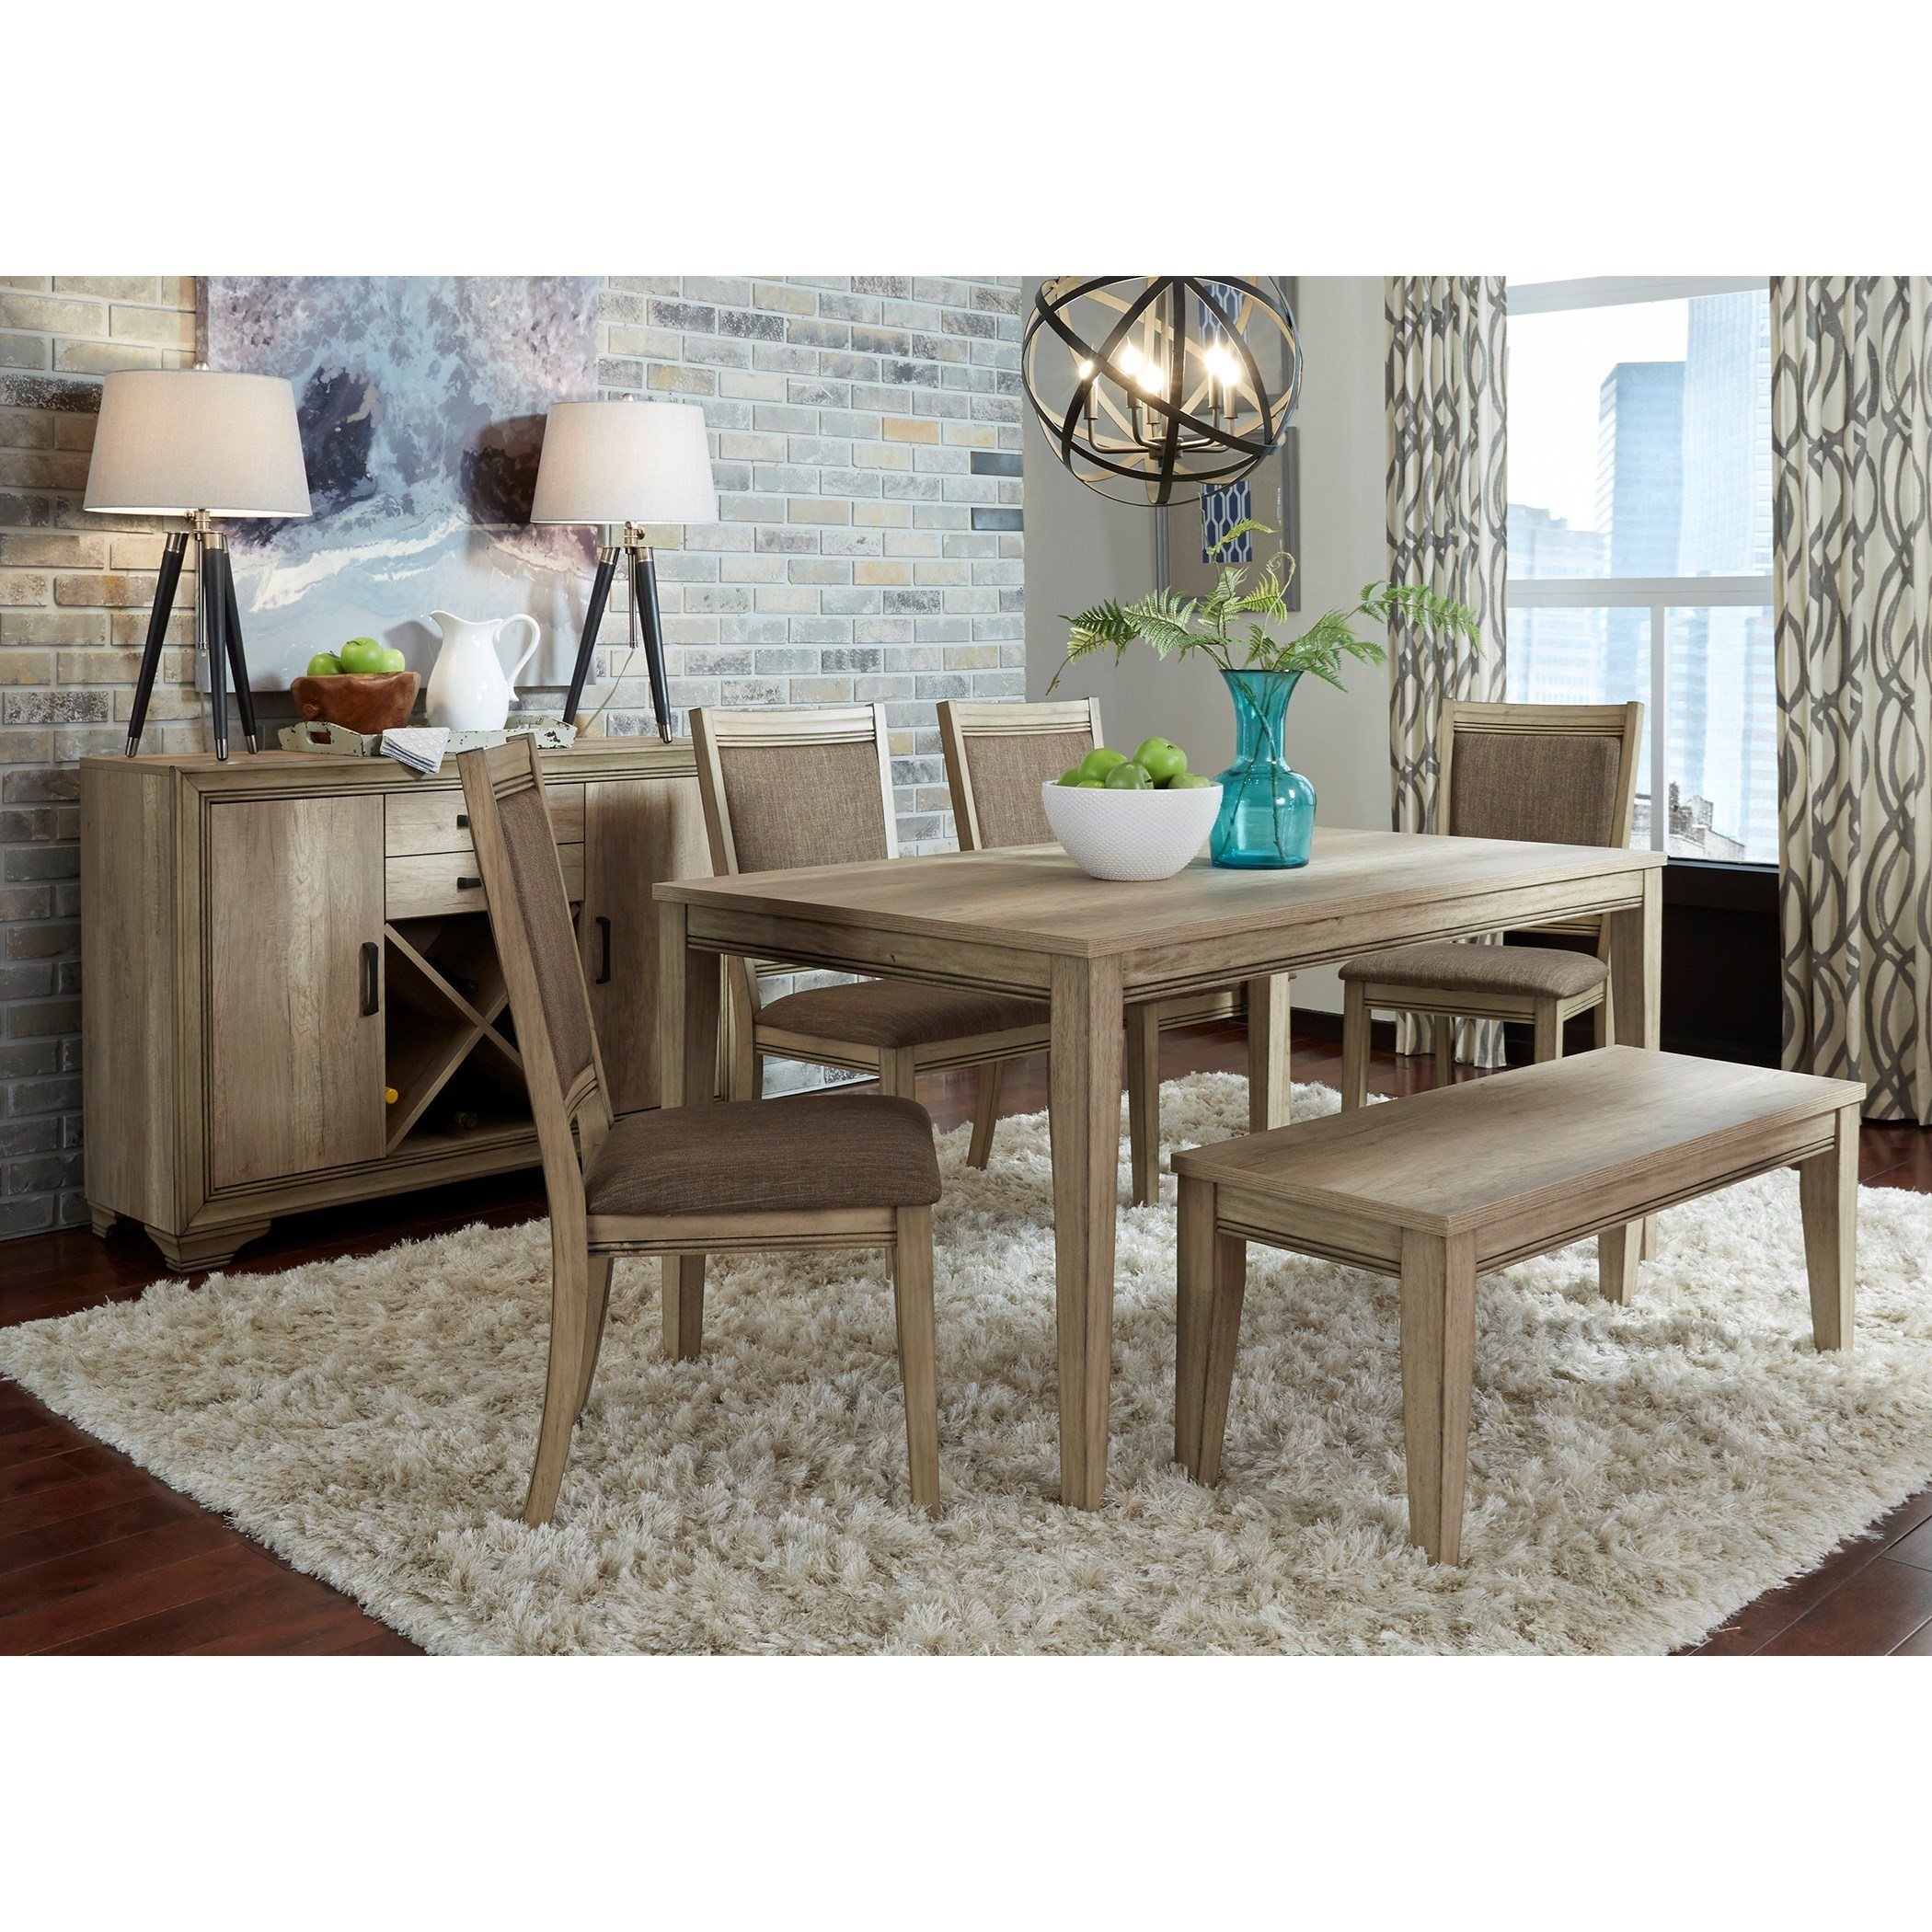 Dining Room Group By Liberty Furniture Wolf Furniture